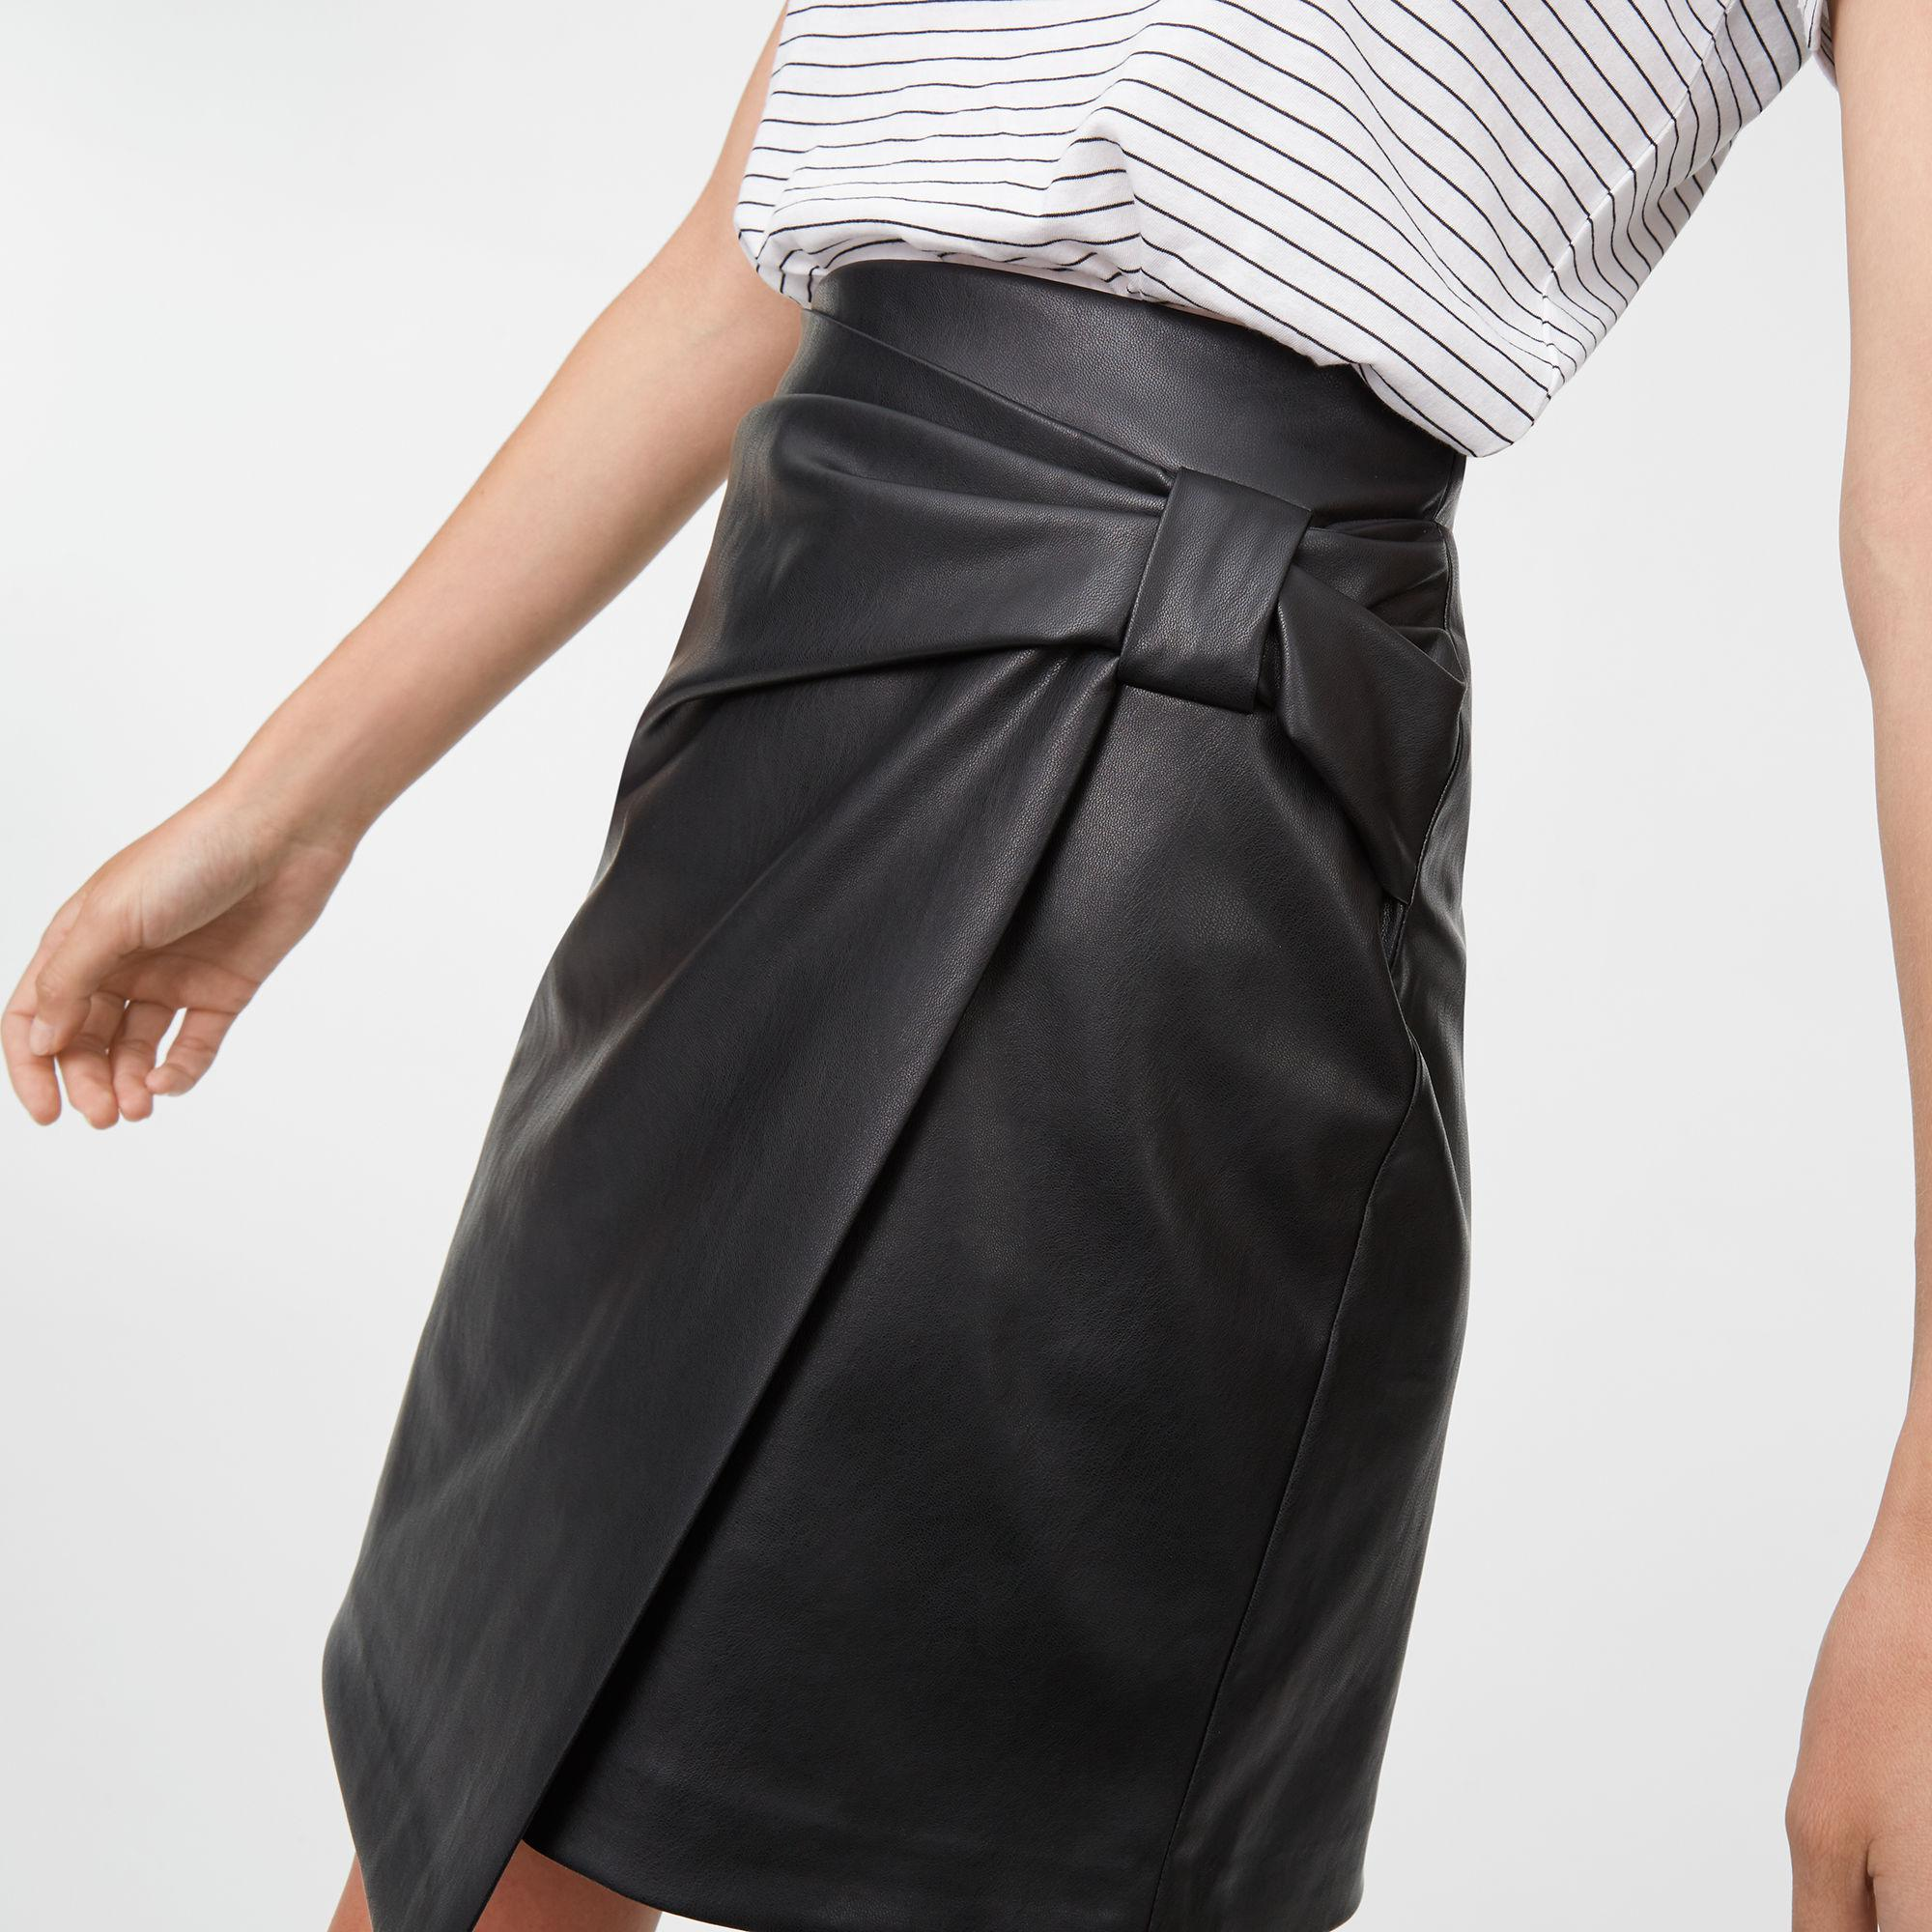 612a190dc7 Club Monaco Leather Skirt - Image Skirt and Slipper Imagepv.co